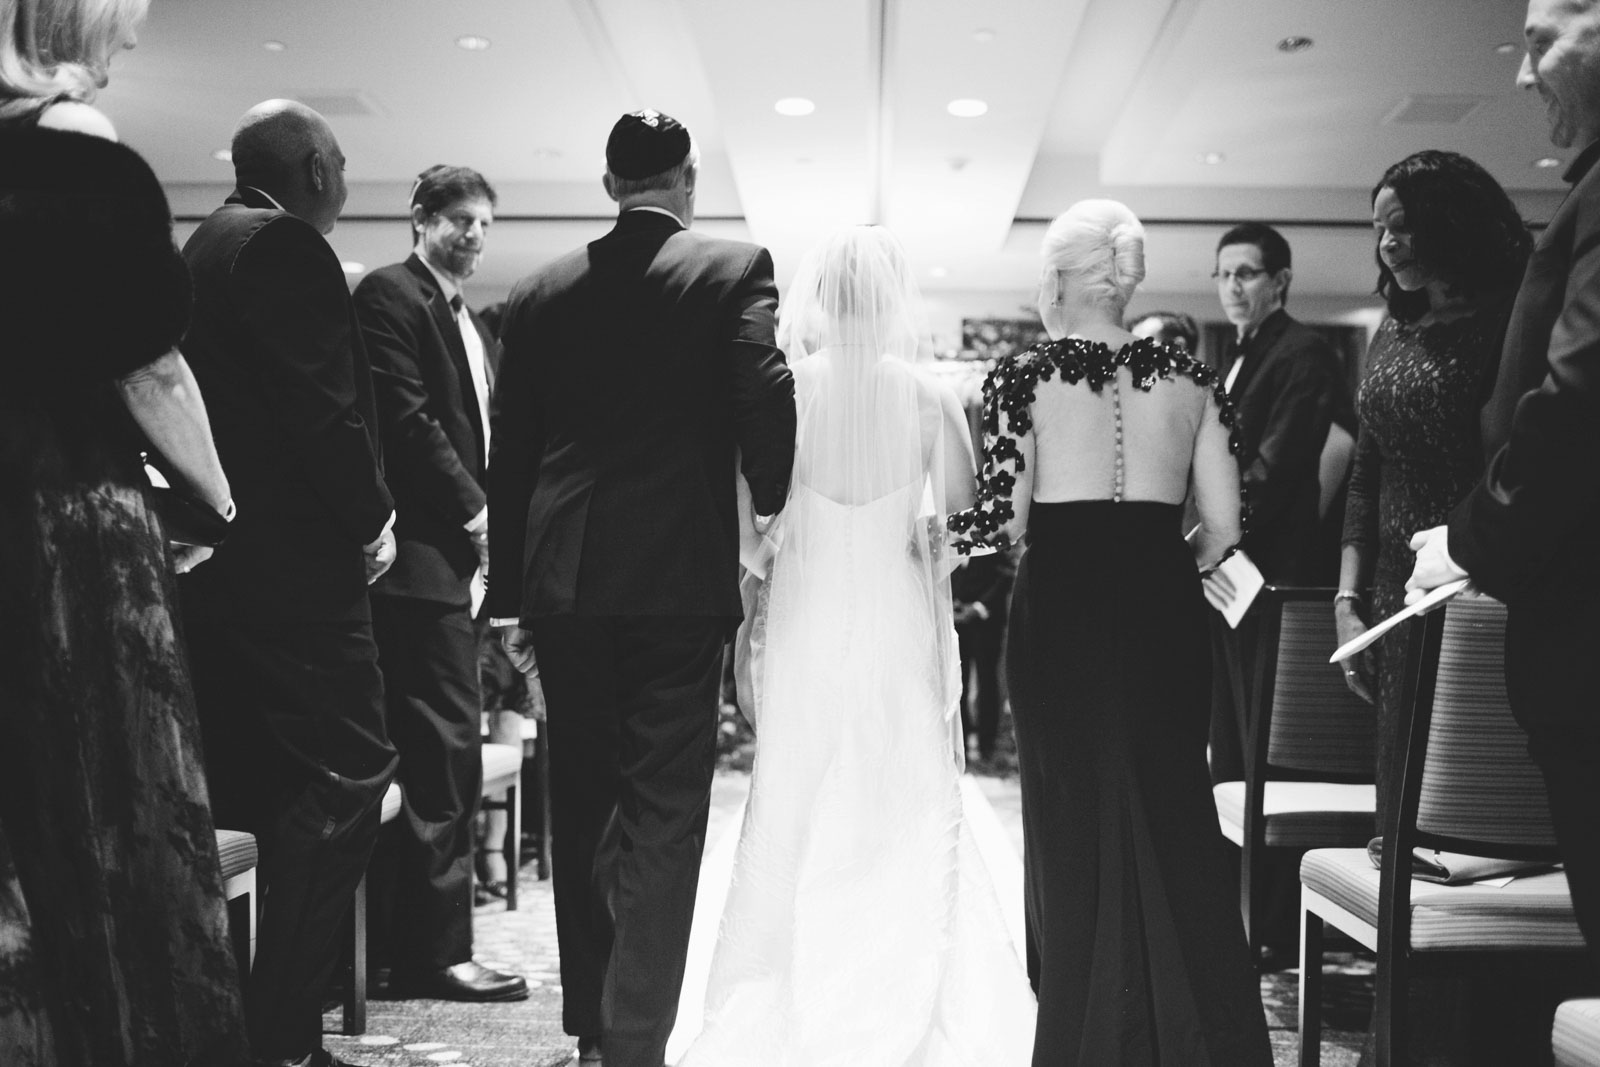 Bride and her parents walk down the aisle from behind in black and white